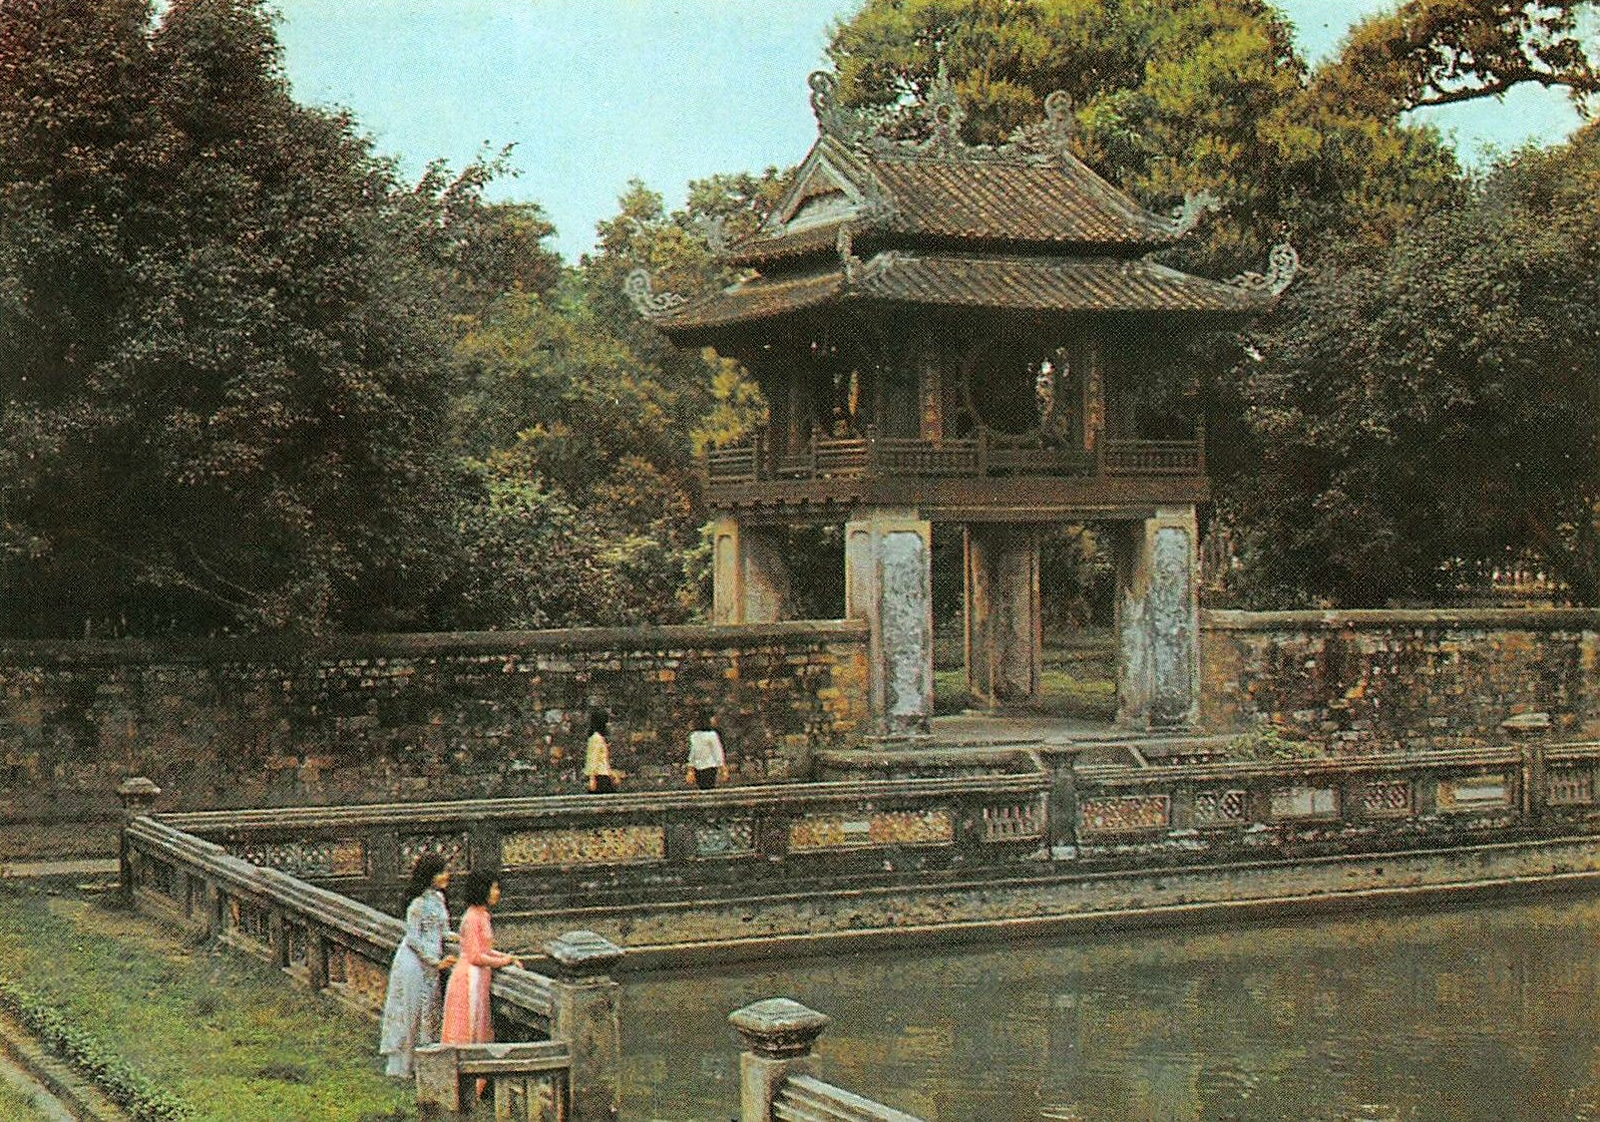 Image of the Temple of Literature in the 1970s in Hanoi, Vietnam